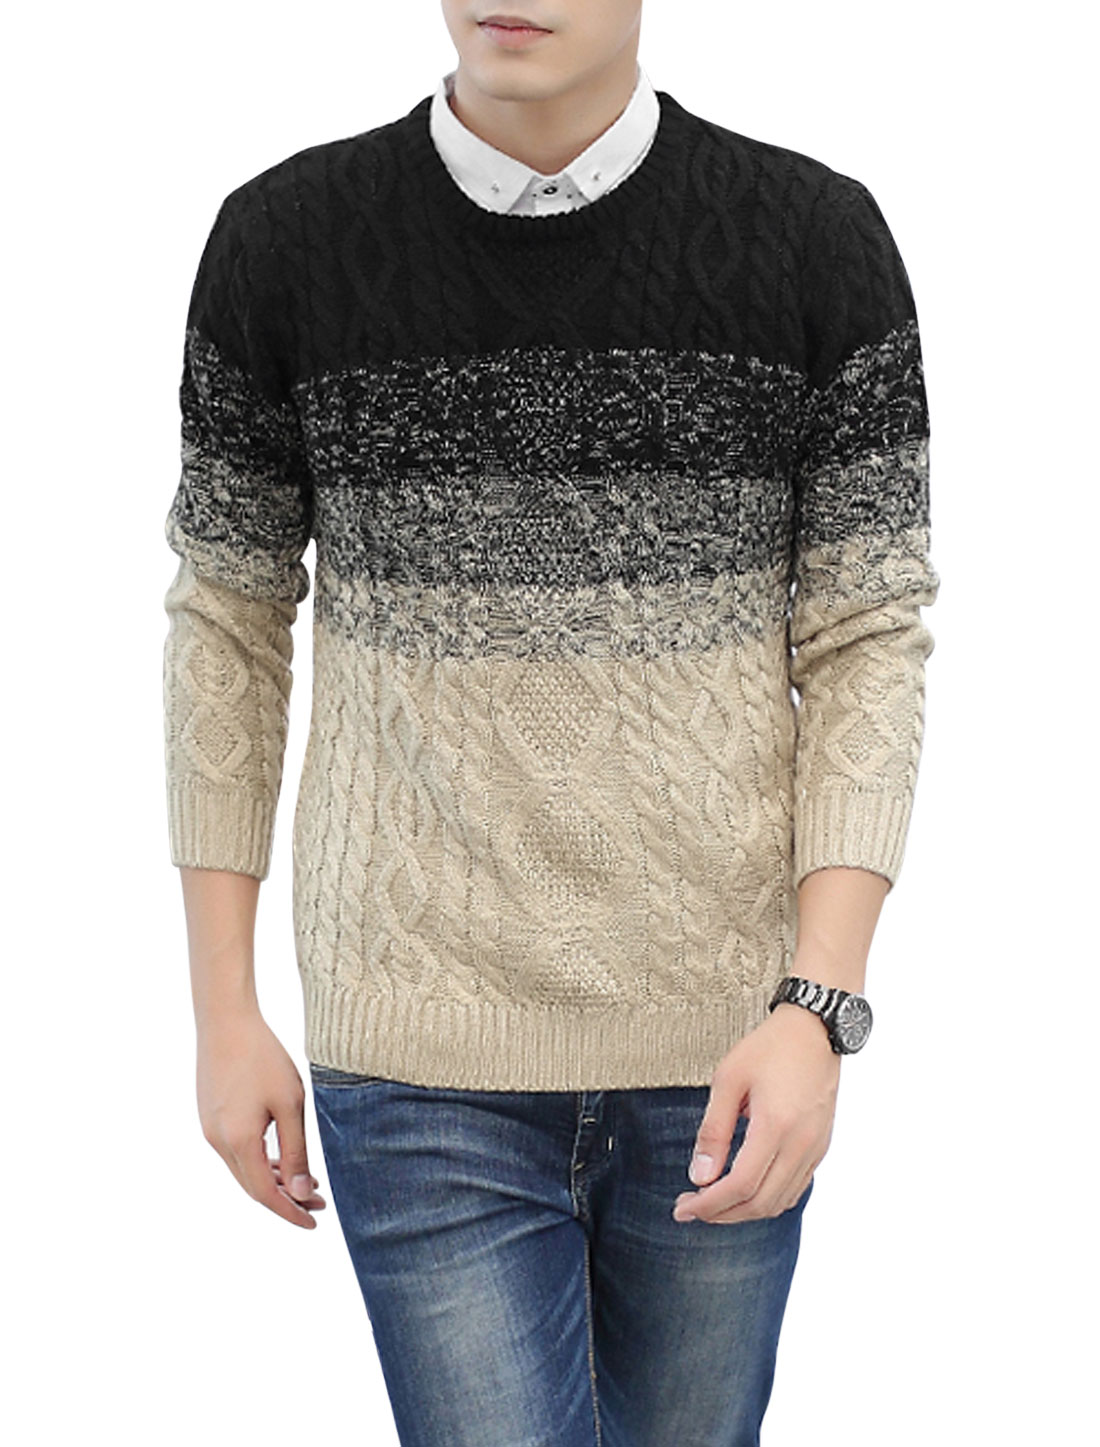 Men Round Neck Long Sleeves Pullover Leisure Sweater Black Khaki S